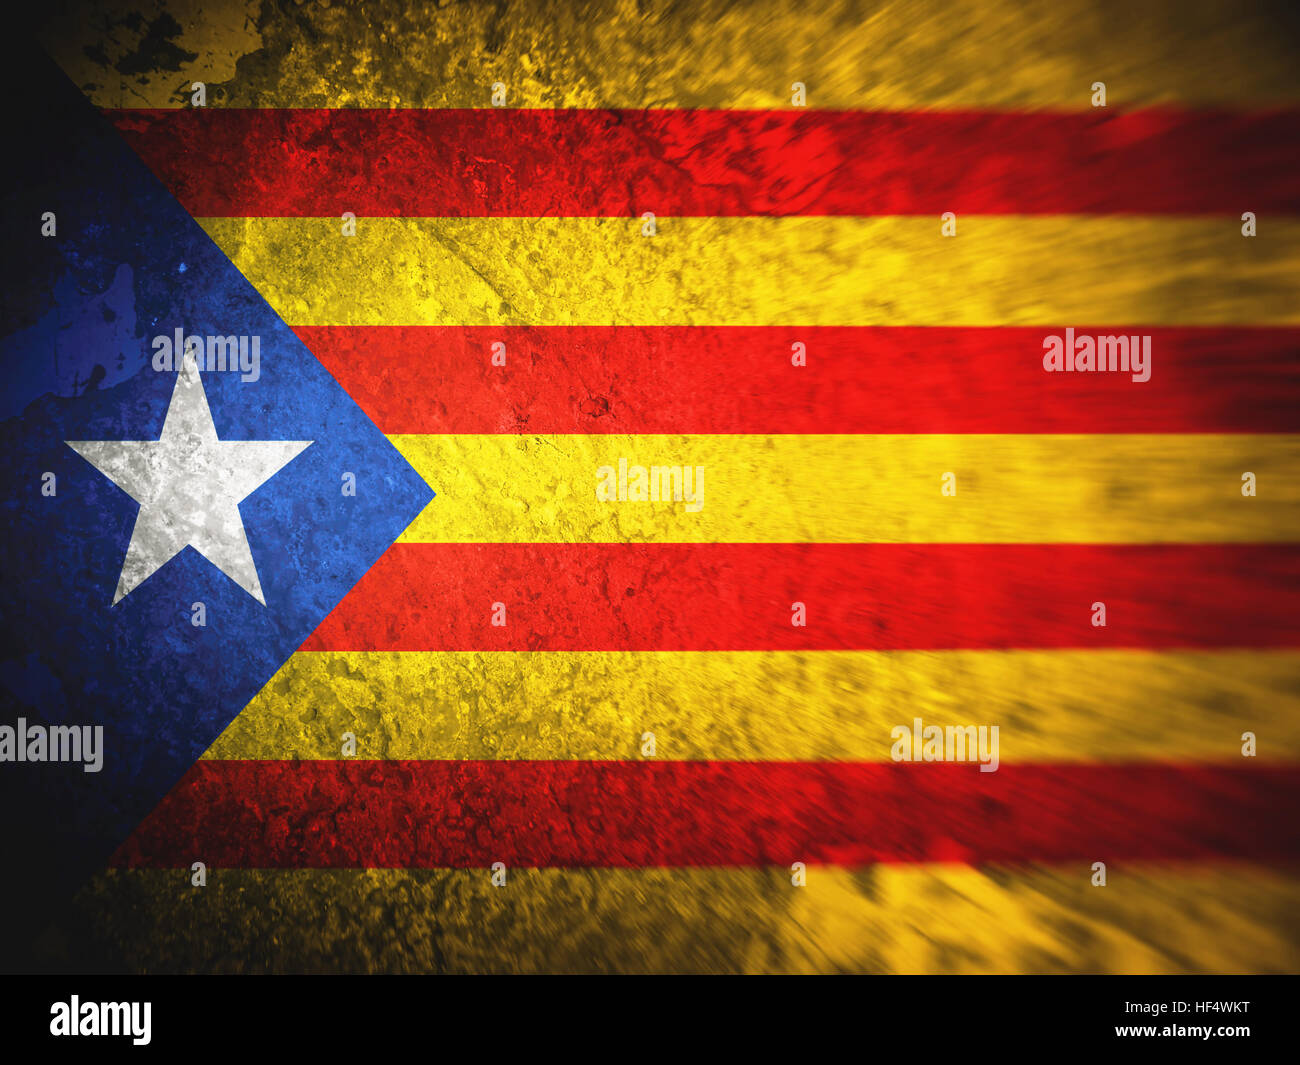 Drapeau de la Catalogne, de fonds, textures, image floue, sale Photo Stock